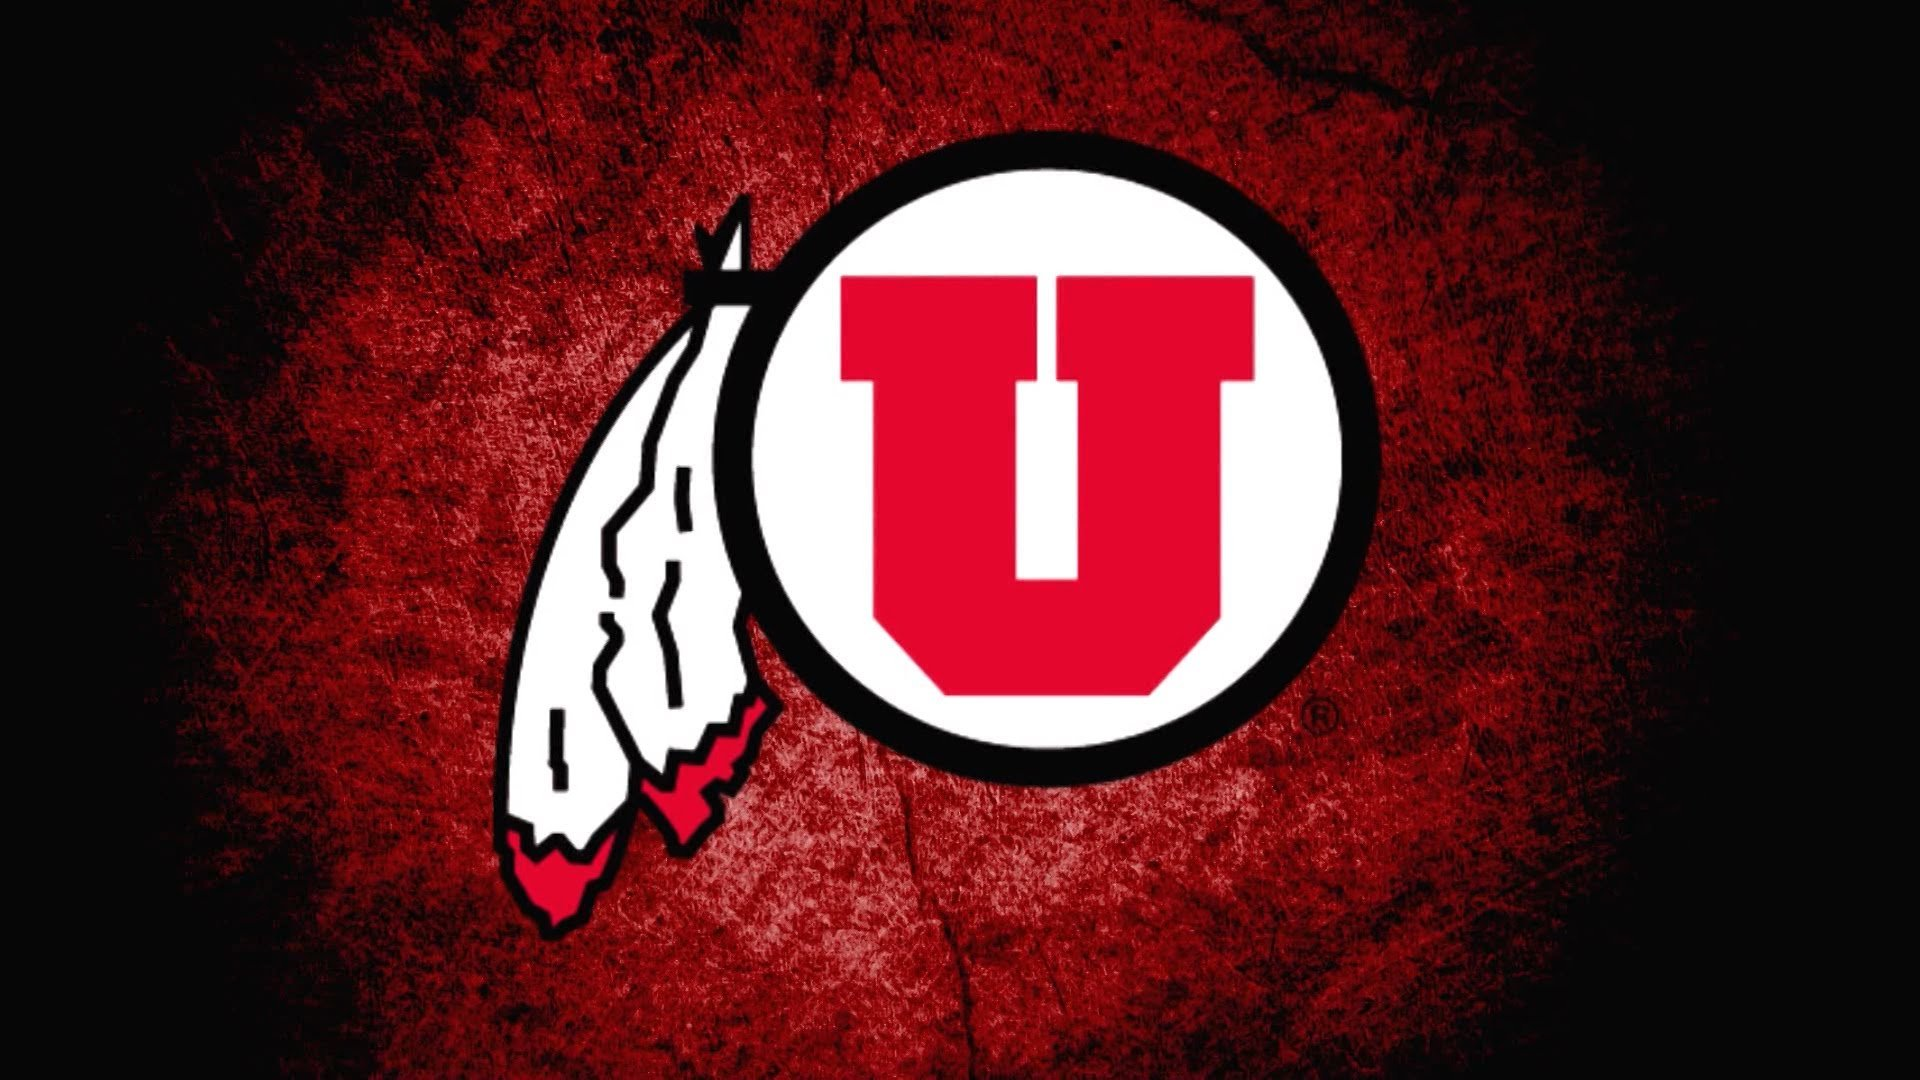 UTAH UTES college football wallpaper background 1920x1080